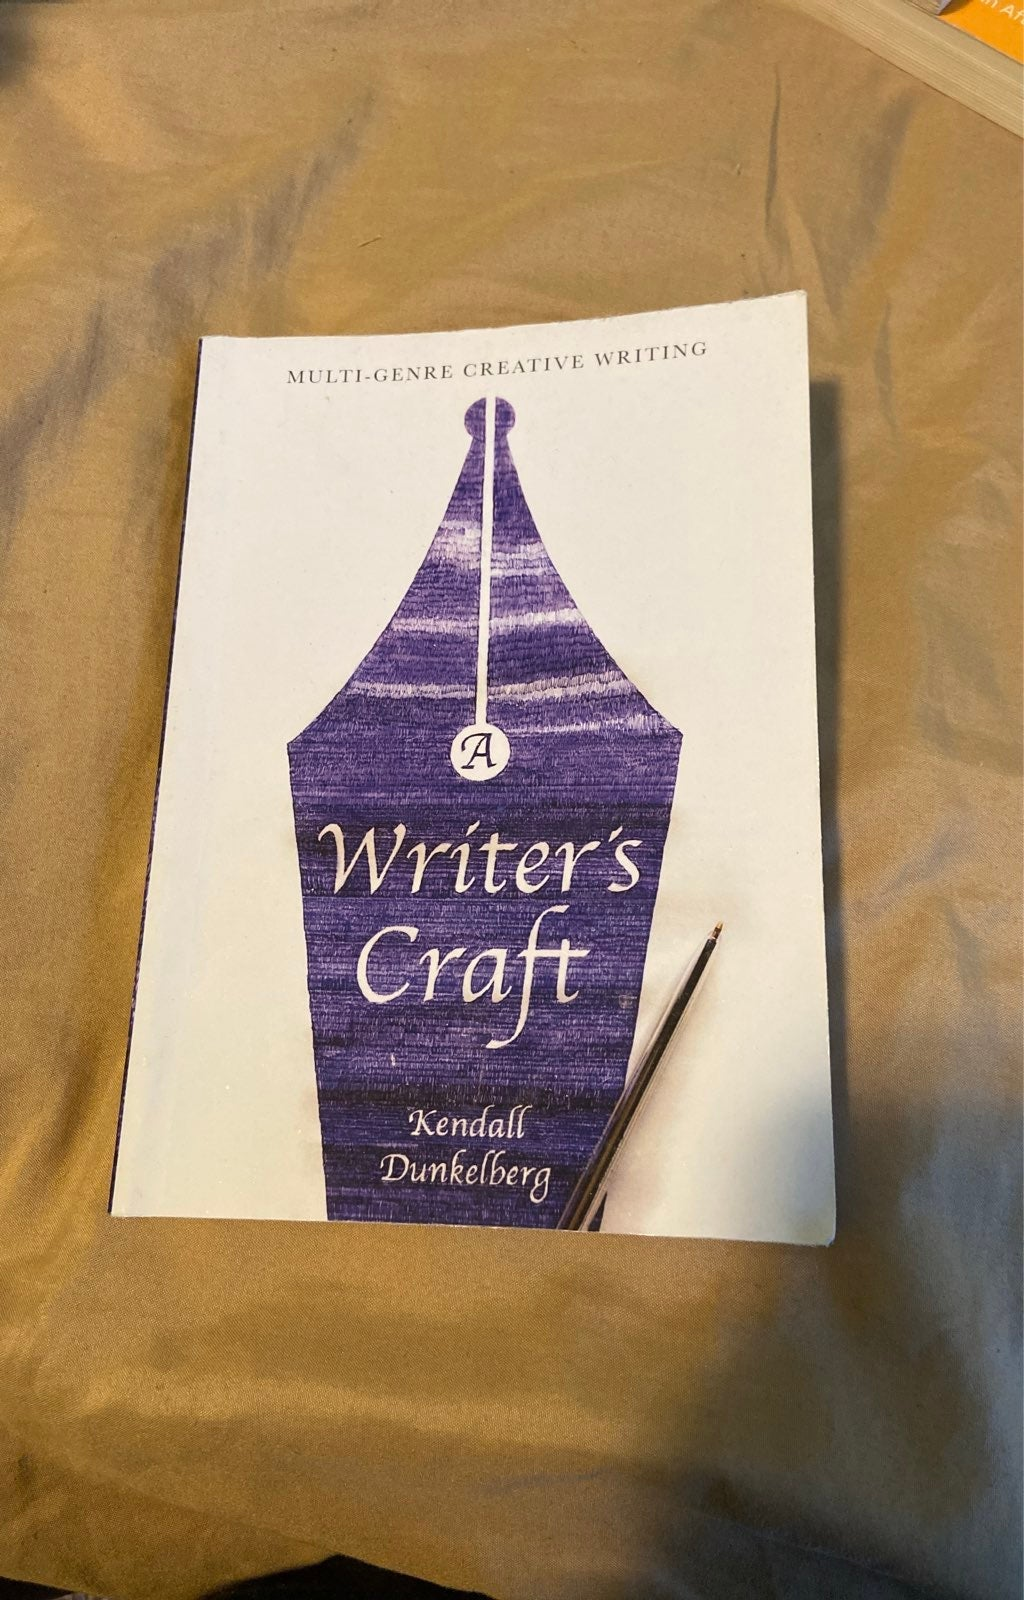 A writer's craft by Kendal Dunkelberg